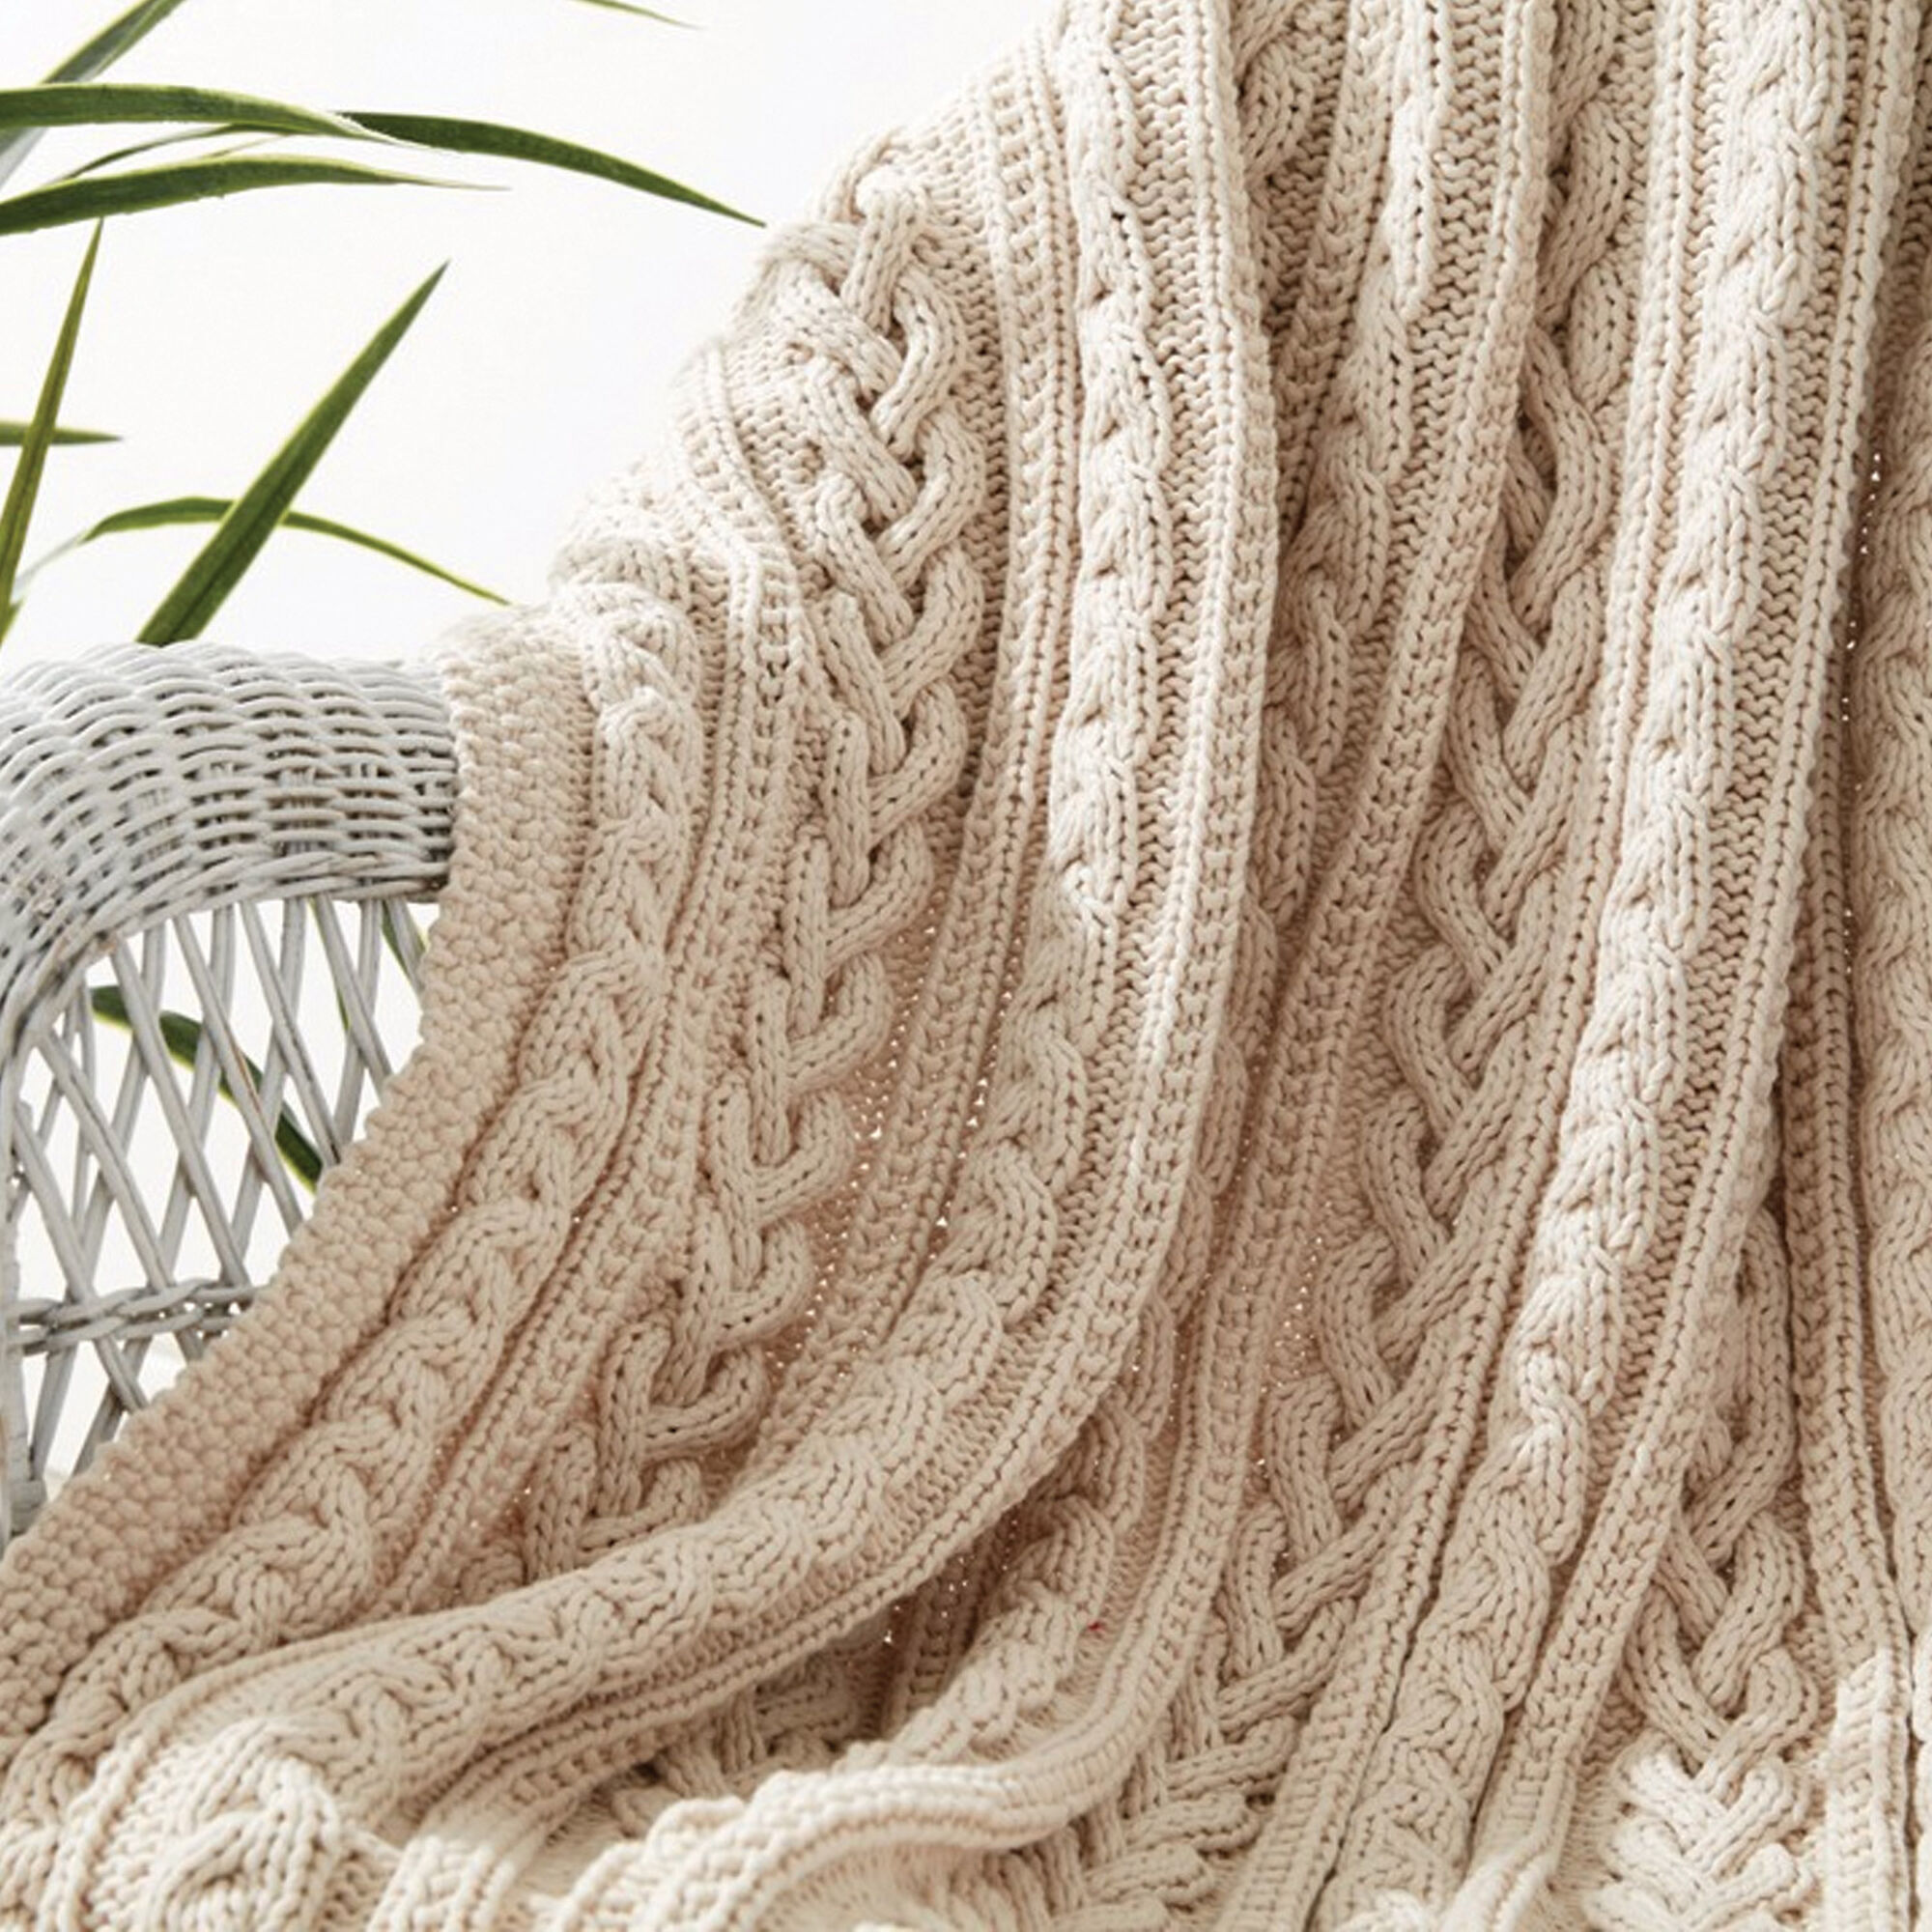 Bernat Braided Cables Knit Throw | Yarnspirations